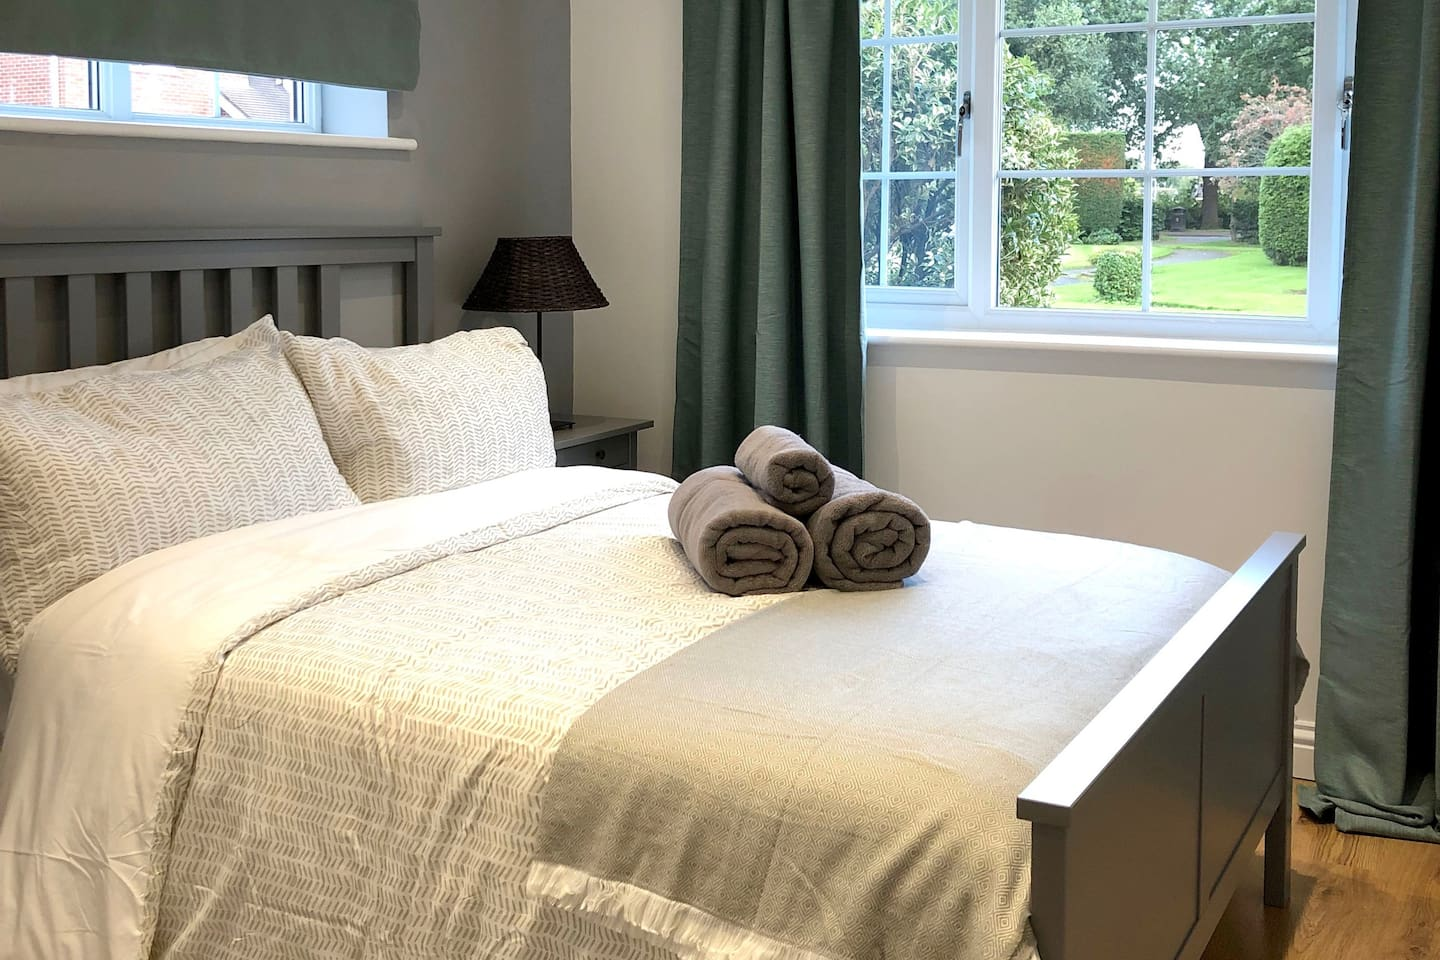 Comfy double bed with fresh linen